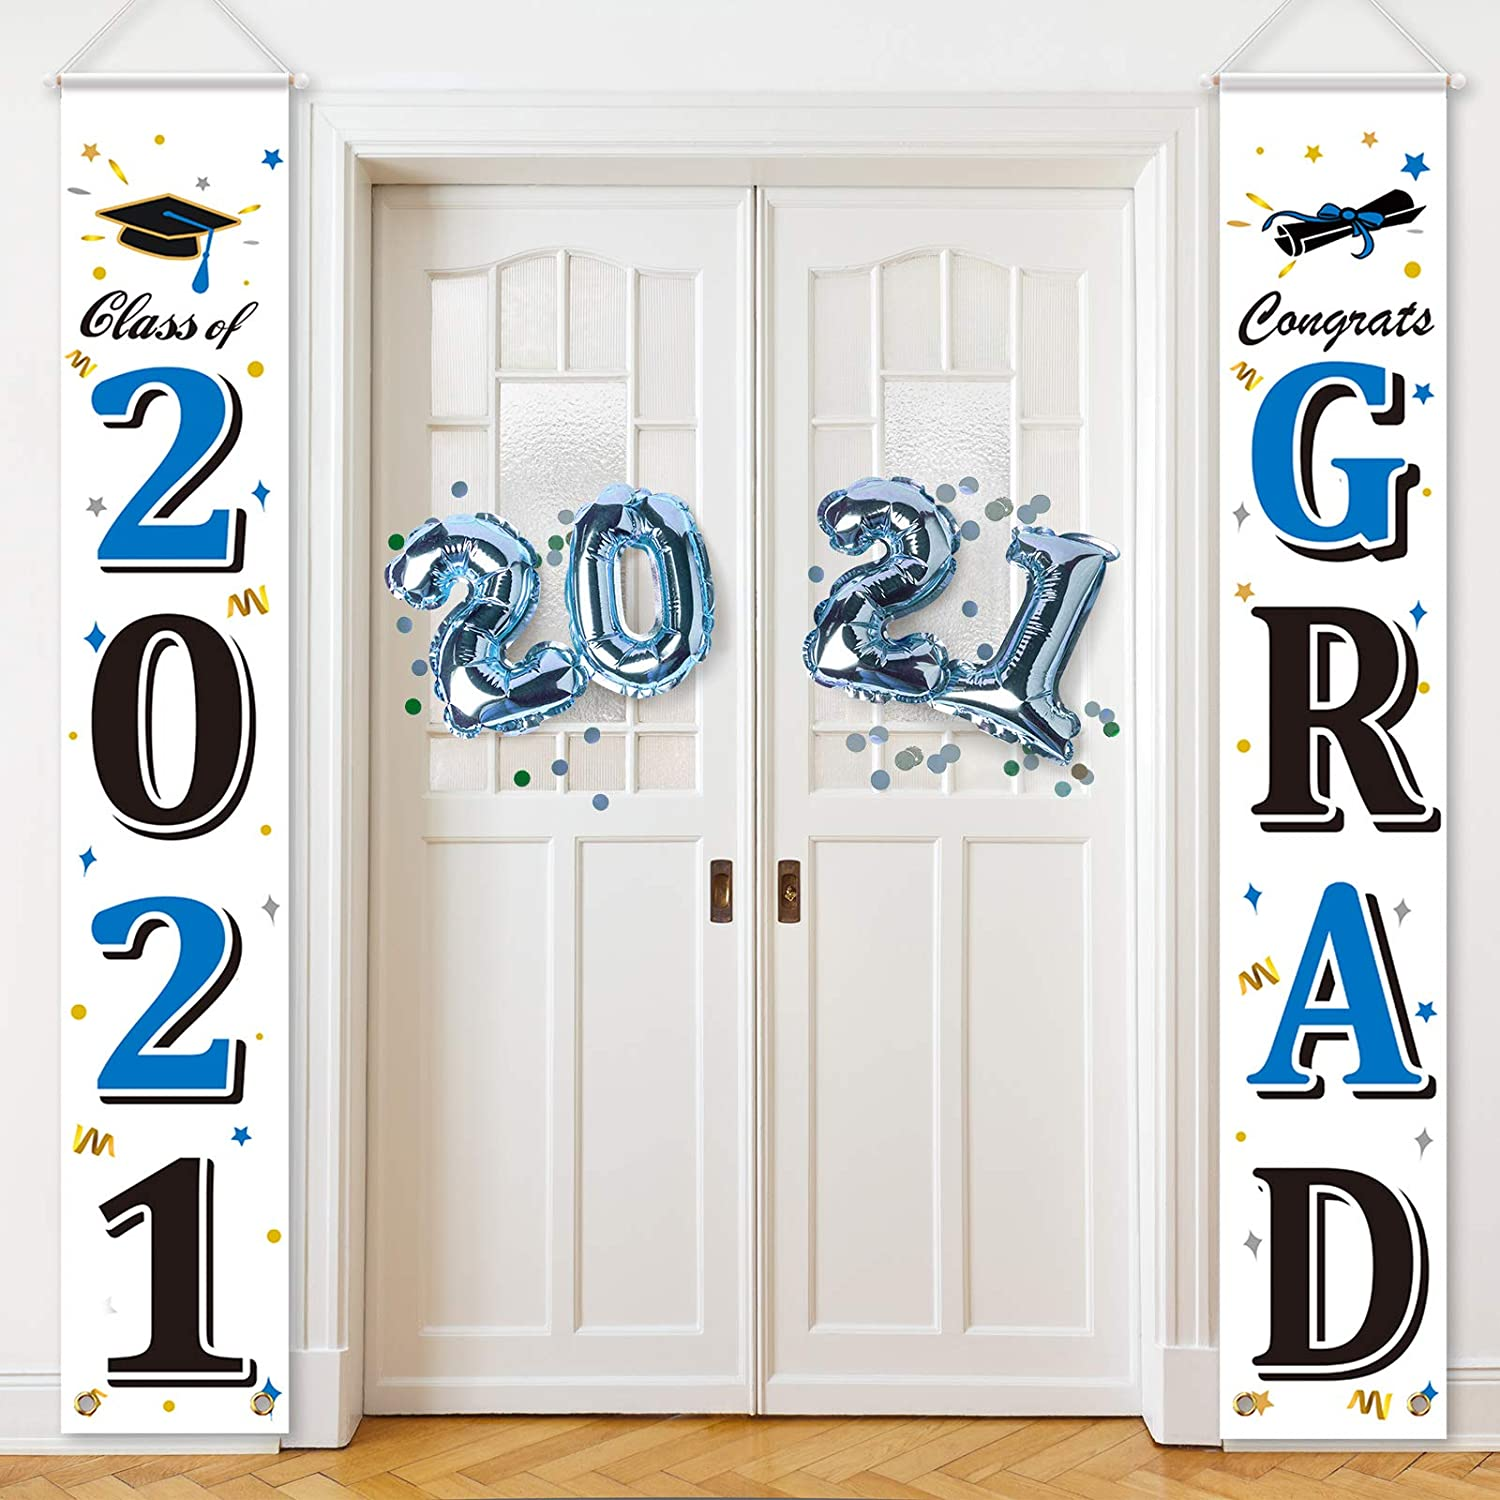 2021 Graduation Party Decorations Graduation Porch Sign 2021 Congrats Graduation Banner Hanging Flags Sign 2021 Grad Party Decors for Outdoor Indoor Home Front Door (White with Blue Black Letters)